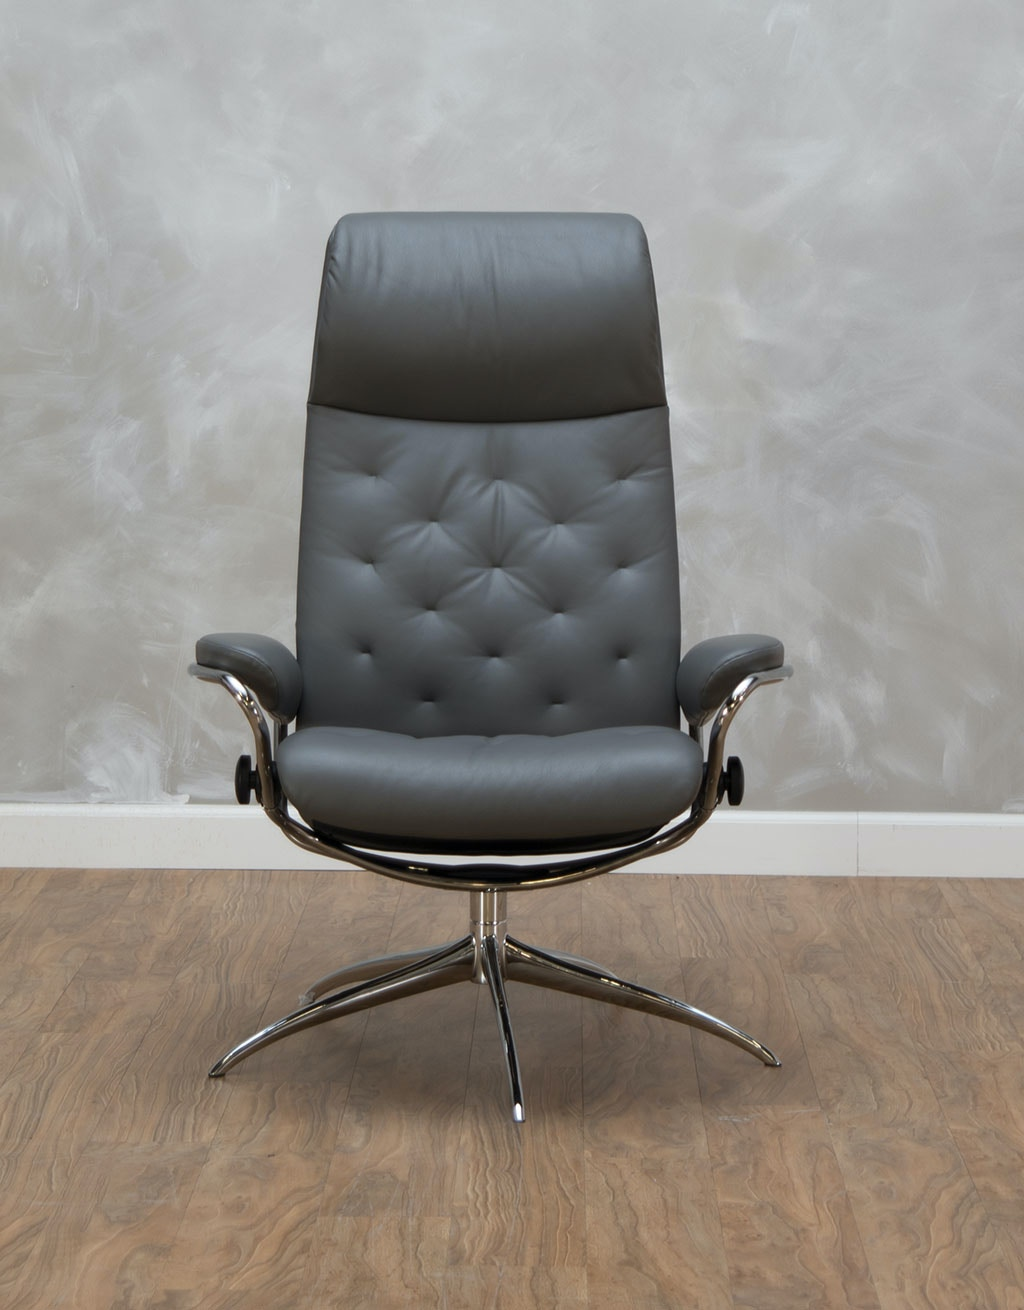 Stressless by Ekornes Metro High Back Office Chair 537682  sc 1 st  Kittleu0027s Furniture & Stressless by Ekornes Home Office Metro High Back Office Chair ...